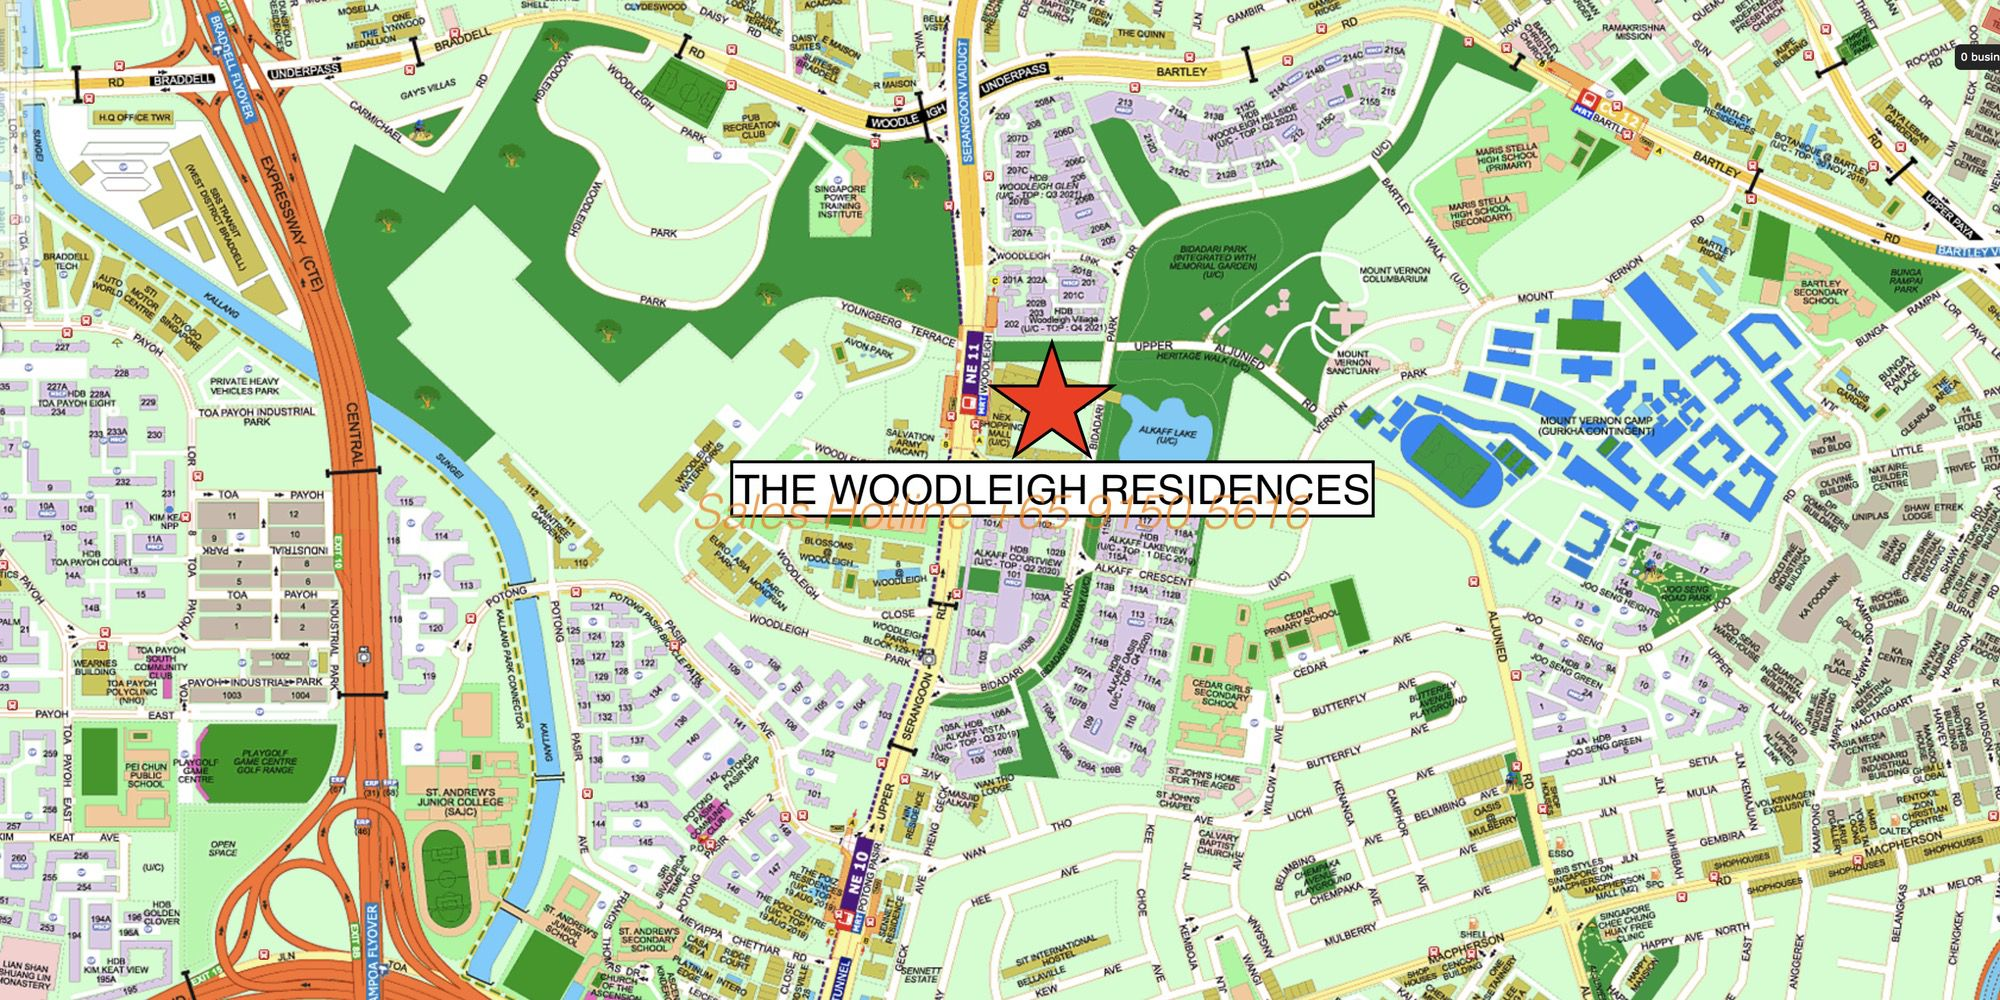 The Woodleigh Residences Location Map